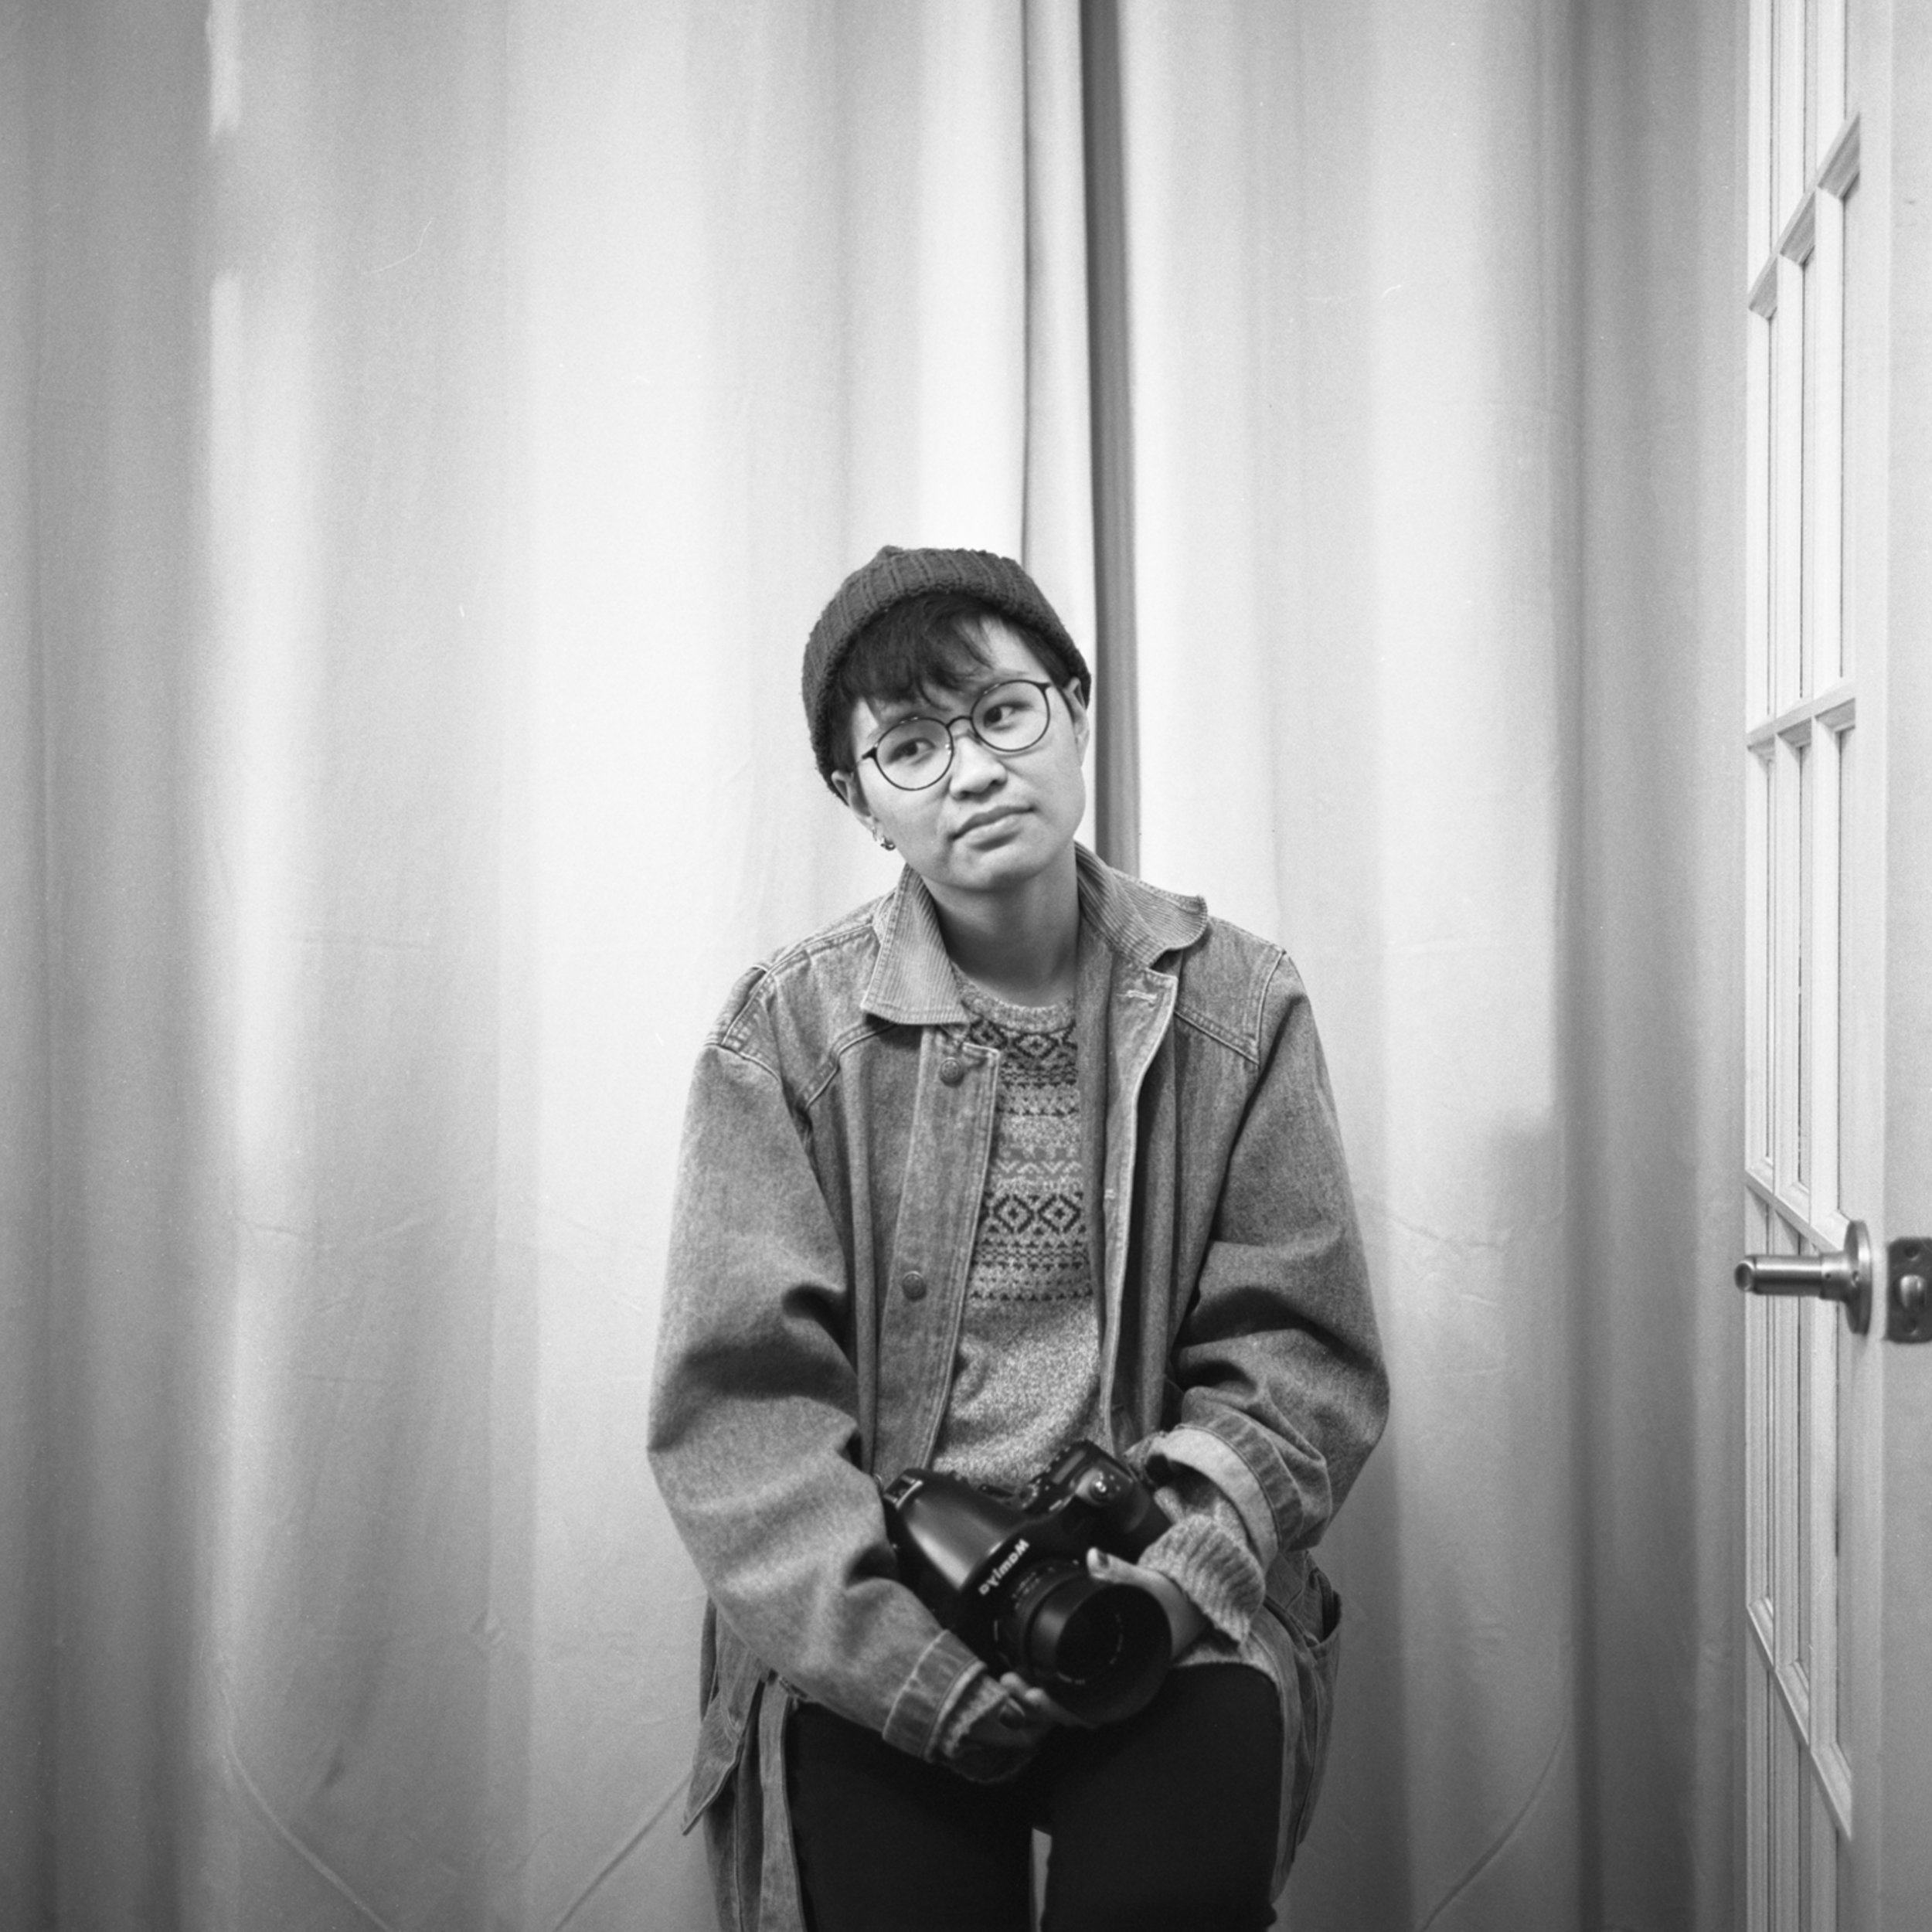 Mengwen Cao, Thanksgiving Day, Brooklyn, New York, November 24, 2016